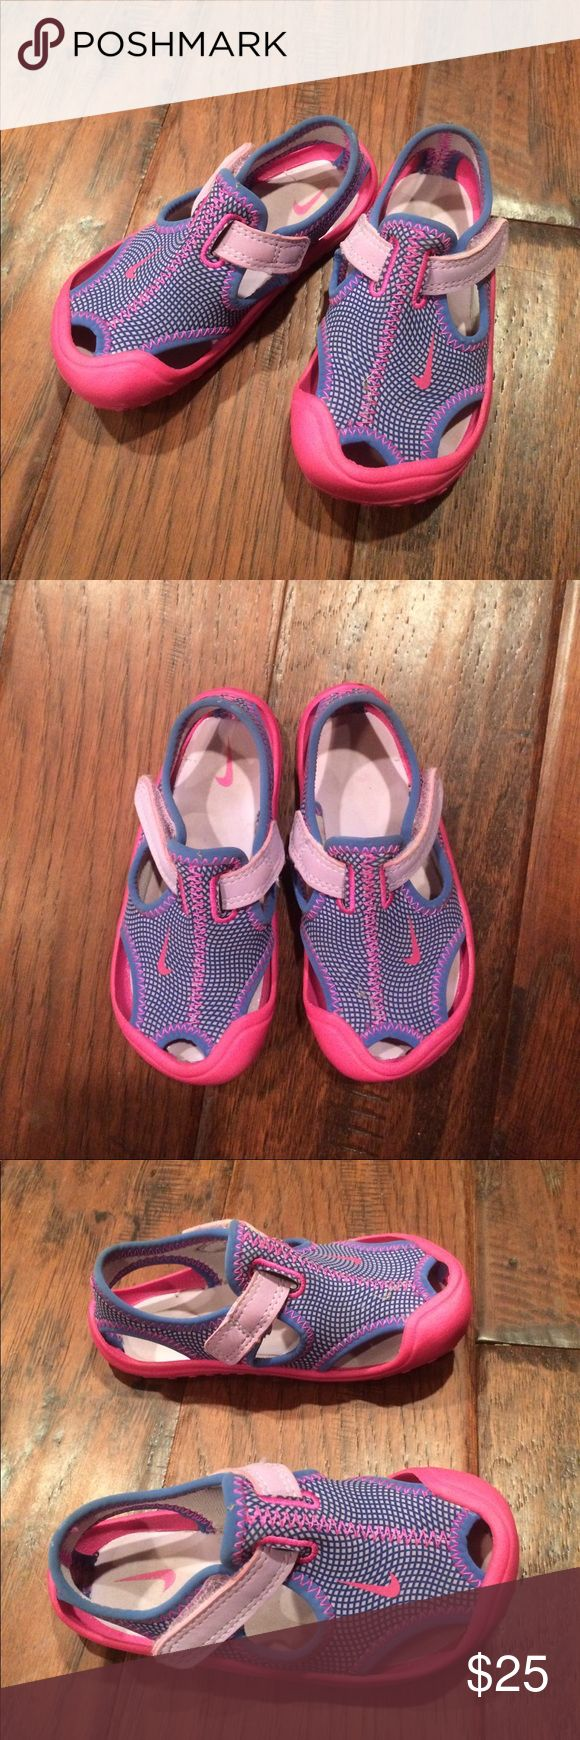 Nike Sunray Protect Toddler Sandal Water Shoe 7 These cute little water shoes were gently worn. They are perfect for the pool, splash pad, or beach. The toe protection is great for a toddler. These were great in and around the ocean and coral. Size 7 toddler. Nike Shoes Water Shoes